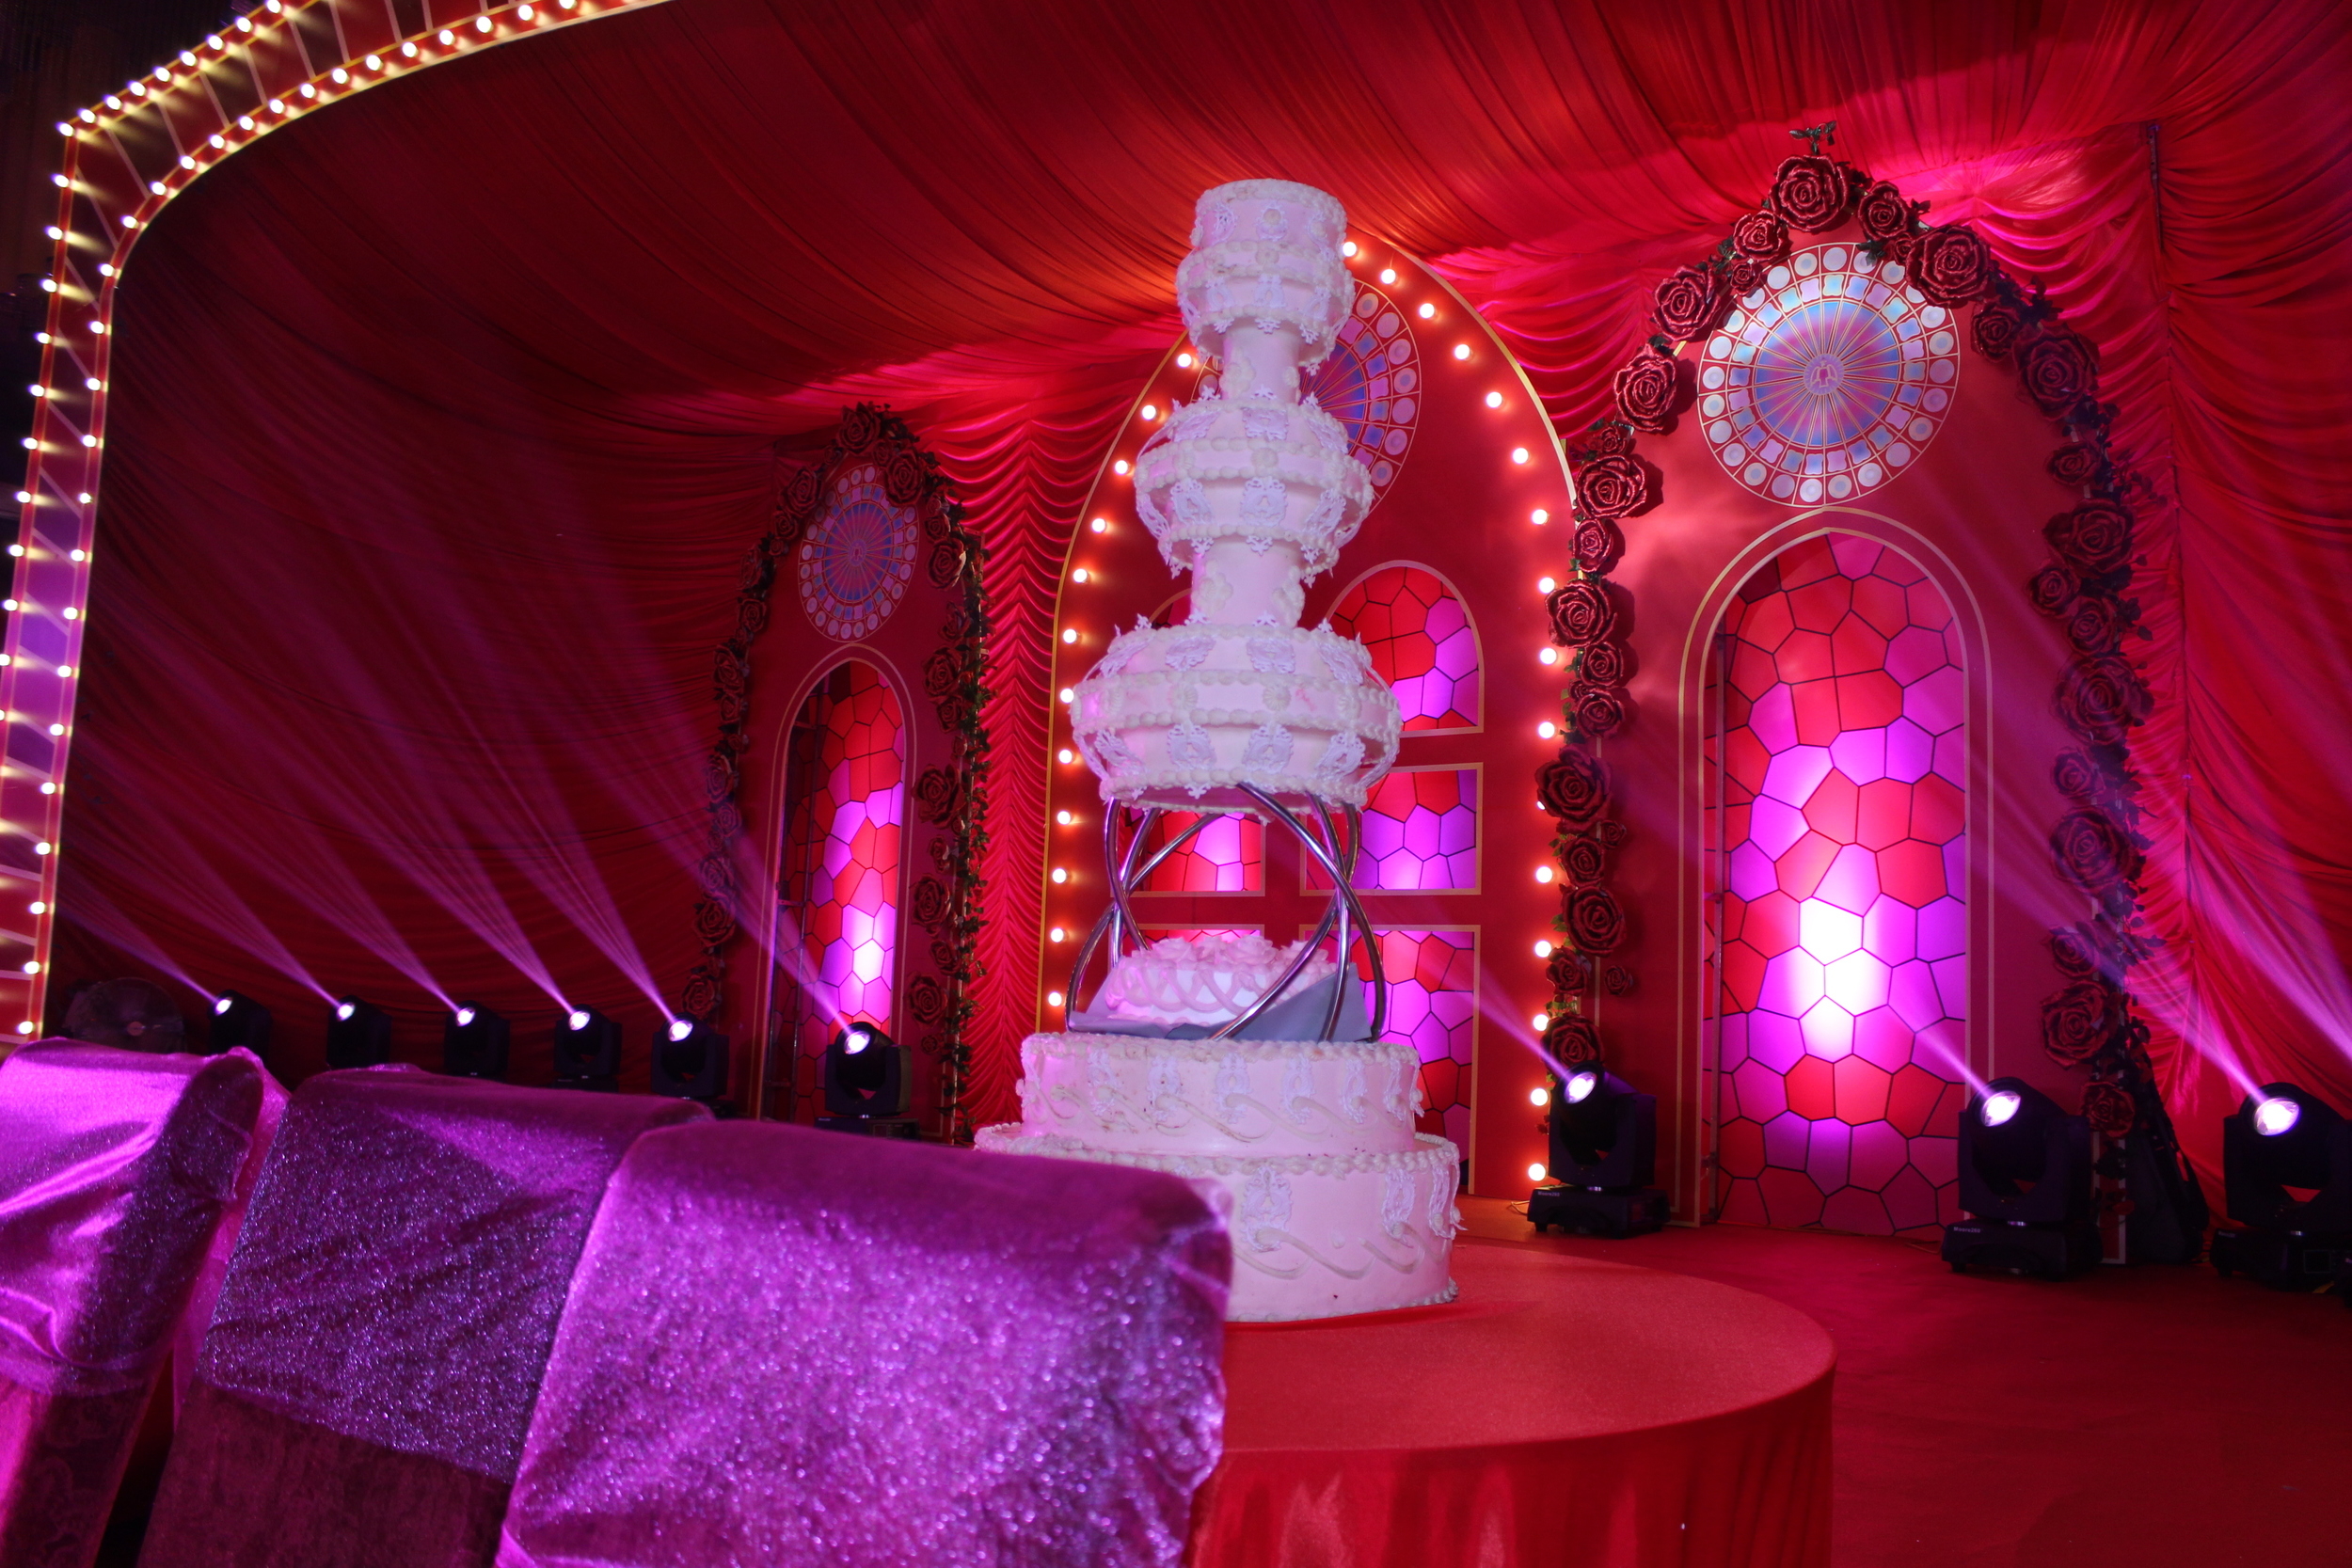 This is a false cake that the bride and groom cut together with a huge sword!